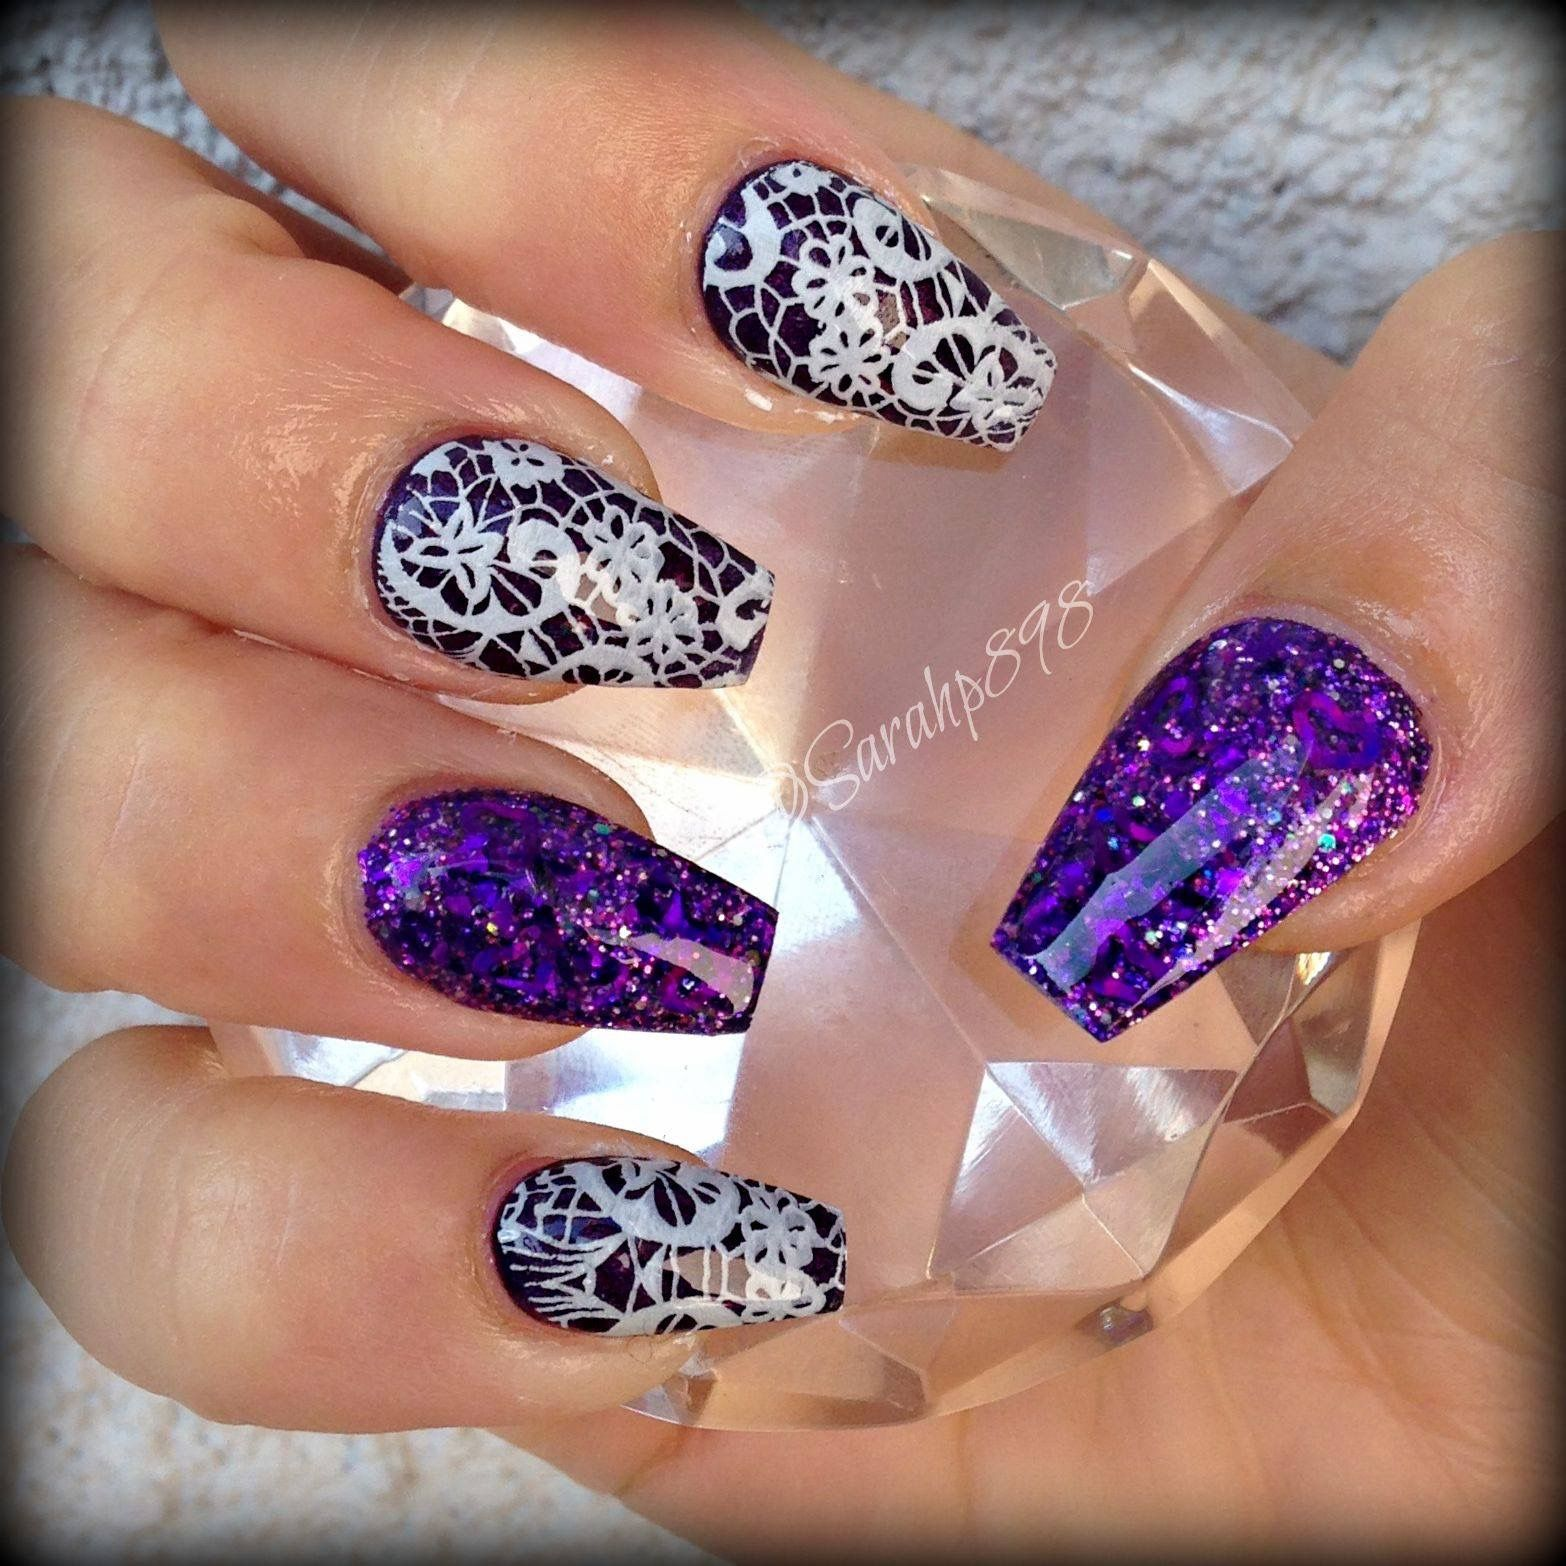 Pin by Manon Ladouceur on NAILS-ONGLE | Pinterest | Purple nail